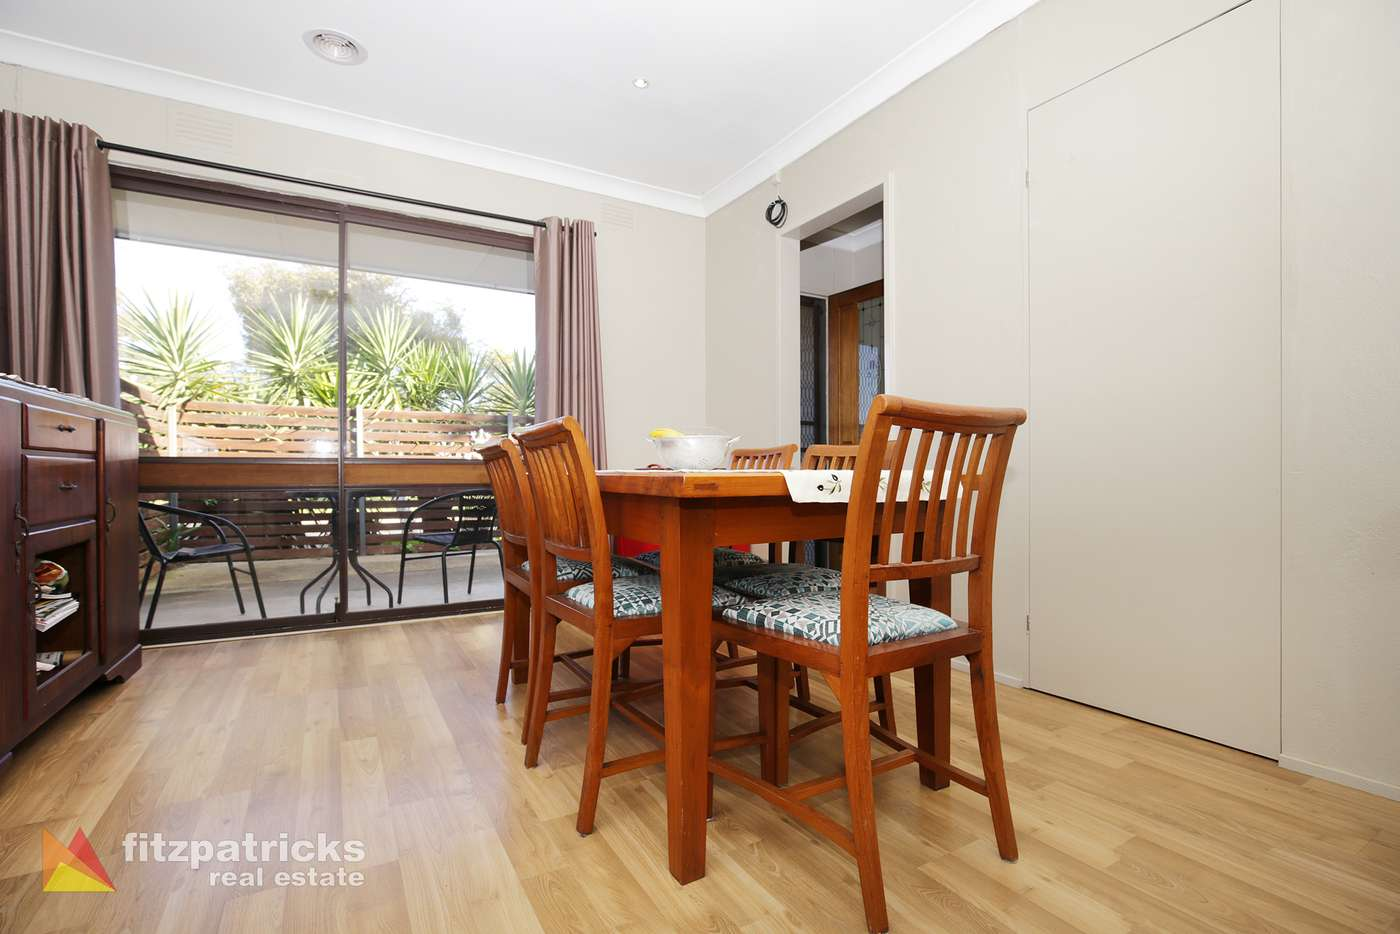 Fifth view of Homely house listing, 5 Crisp Drive, Ashmont NSW 2650